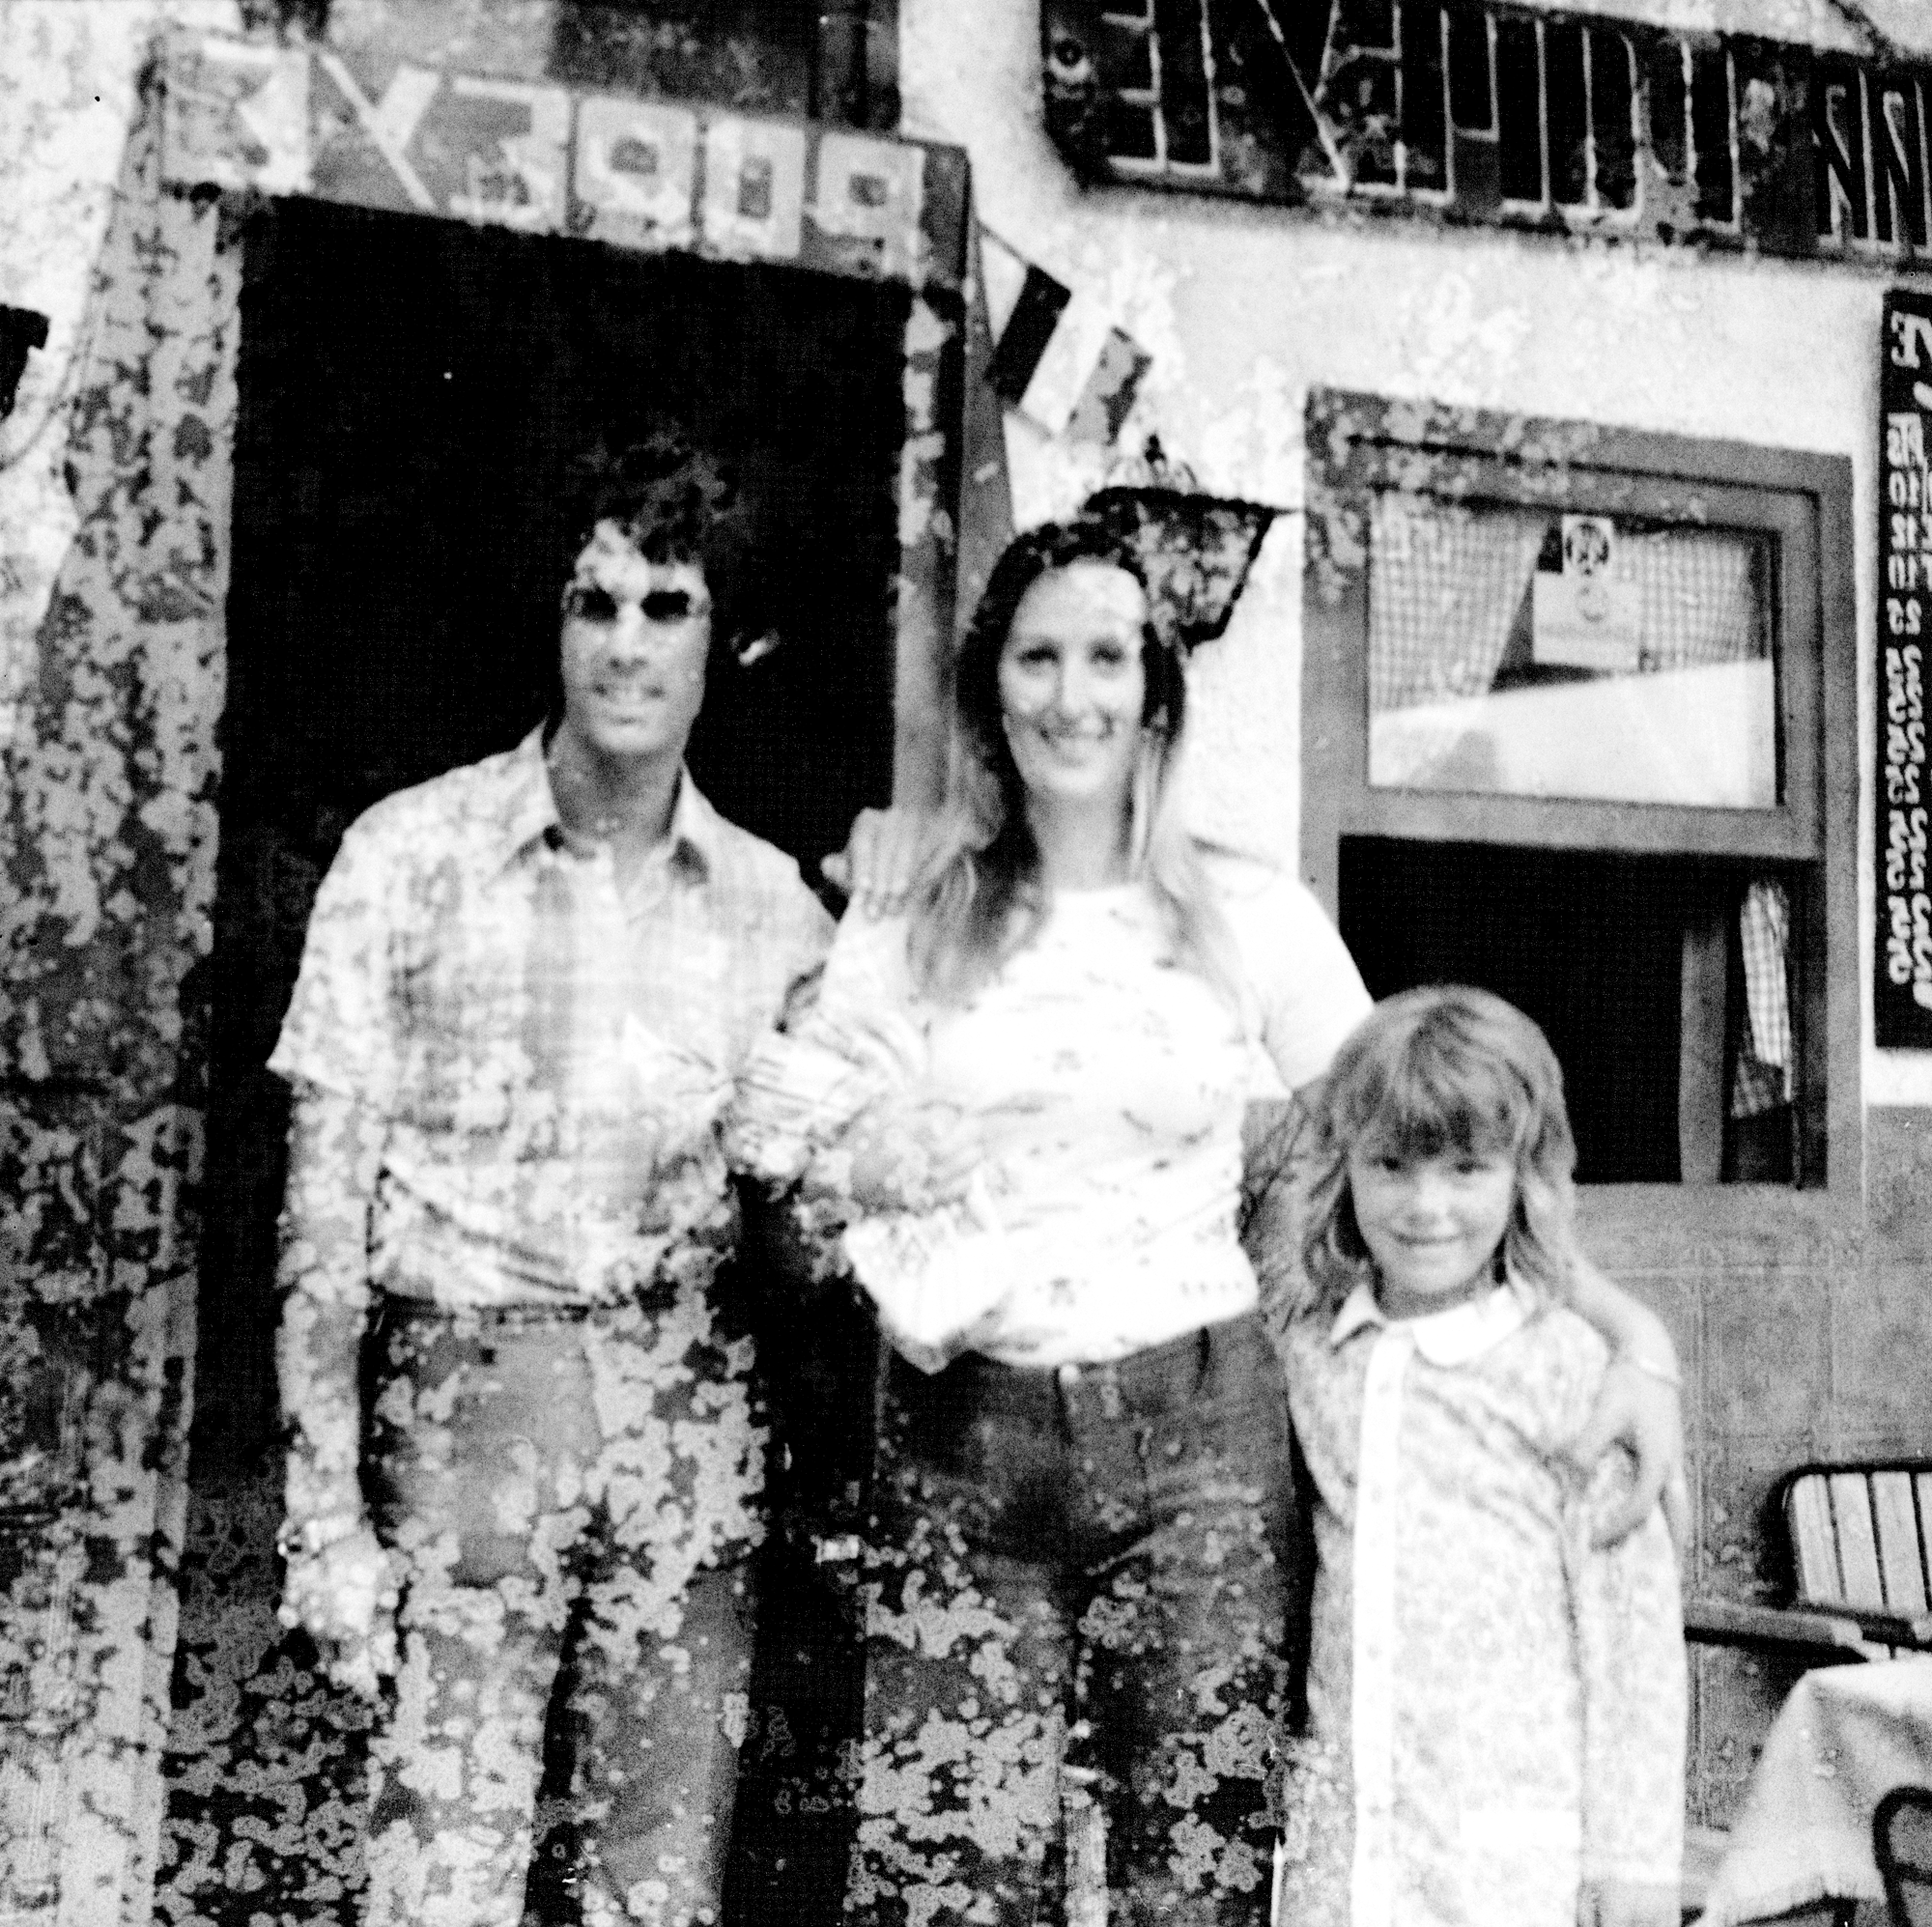 Image Description: Another family photograph, featuring three different people. In this photograph we have a man (far left), a woman (center), and a young boy (far right). The man is wearing a light, multi-toned plaid shirt, light coloured trousers/jeans, sunglasses and watch on his right wrist. He has dark curly hair, which cannot be seen in great deal due to the quality of the negative image. His hand is leaning on the woman's right shoulder. The woman, is about an inch smaller than the man, and is wearing some sort of patterned t-shirt, and dark grey trousers. She has what looks like a loaf of bread in her right arm, carrying it like you would a small child. Her left arm is around the young boy. The young boy is small, he is wearing a white patterned shirt. His hair shoulder length. They are all smiling, looking towards the camera. They are stood in front of, what seems to be a small store or cafe. To the far right, going of the image are chairs and the start of a table - these are placed under a window of the store or cafe.